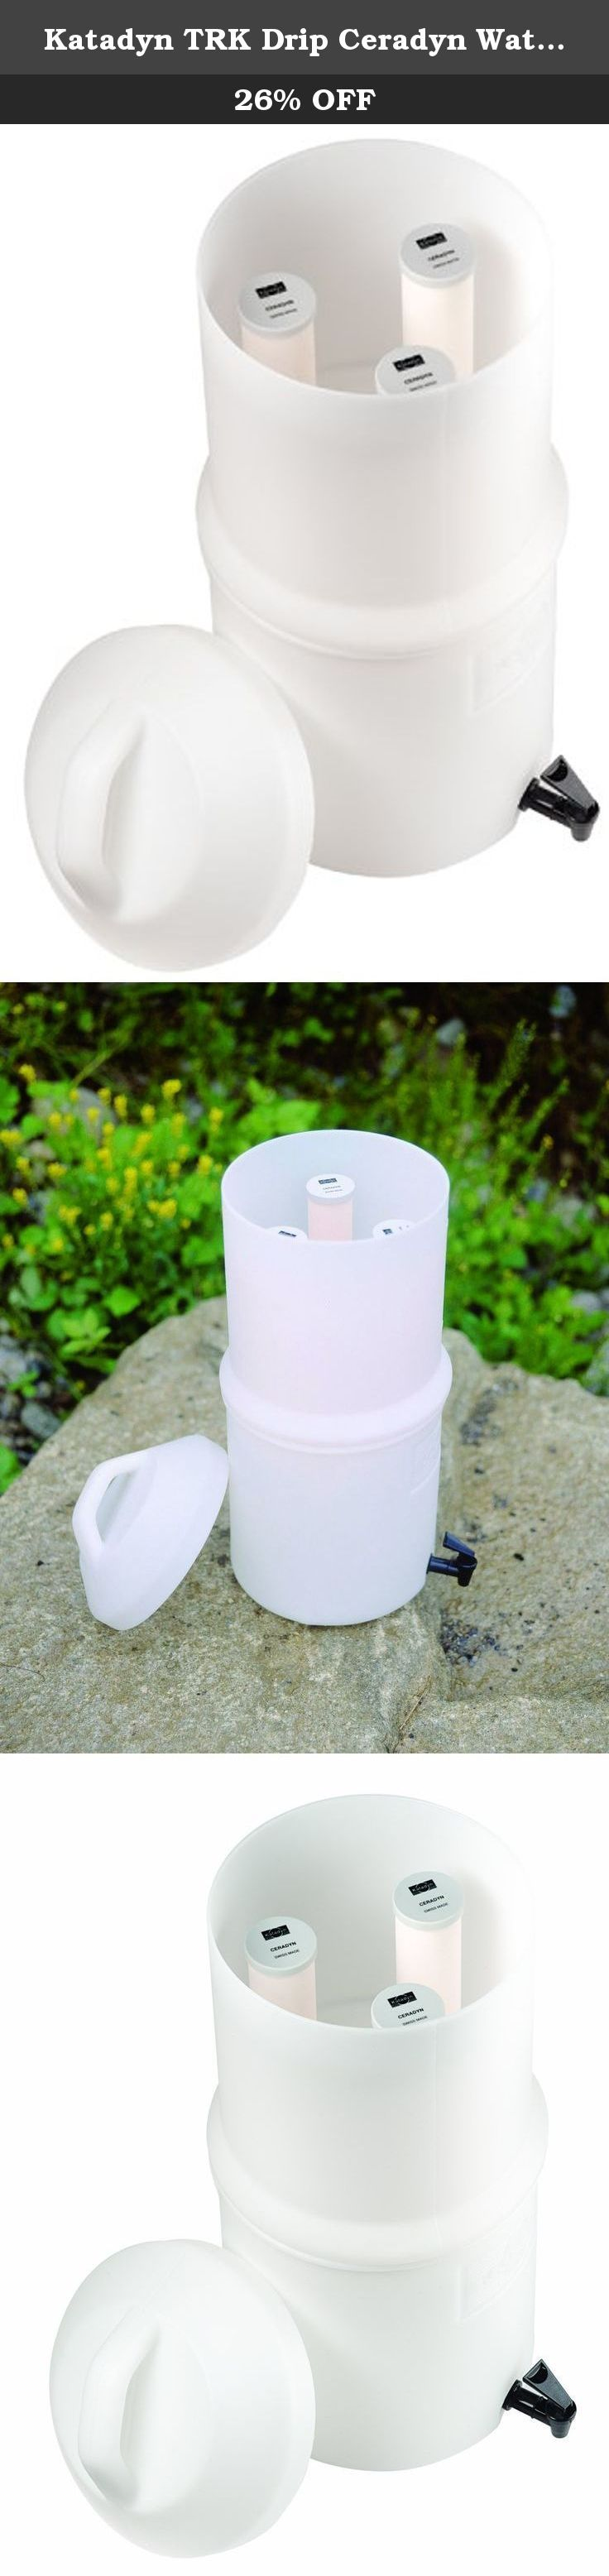 Katadyn TRK Drip Ceradyn Water Filter. No pumping required - water container with built-in ceramic filters. Used and trusted by relief agencies around the globe for many years.